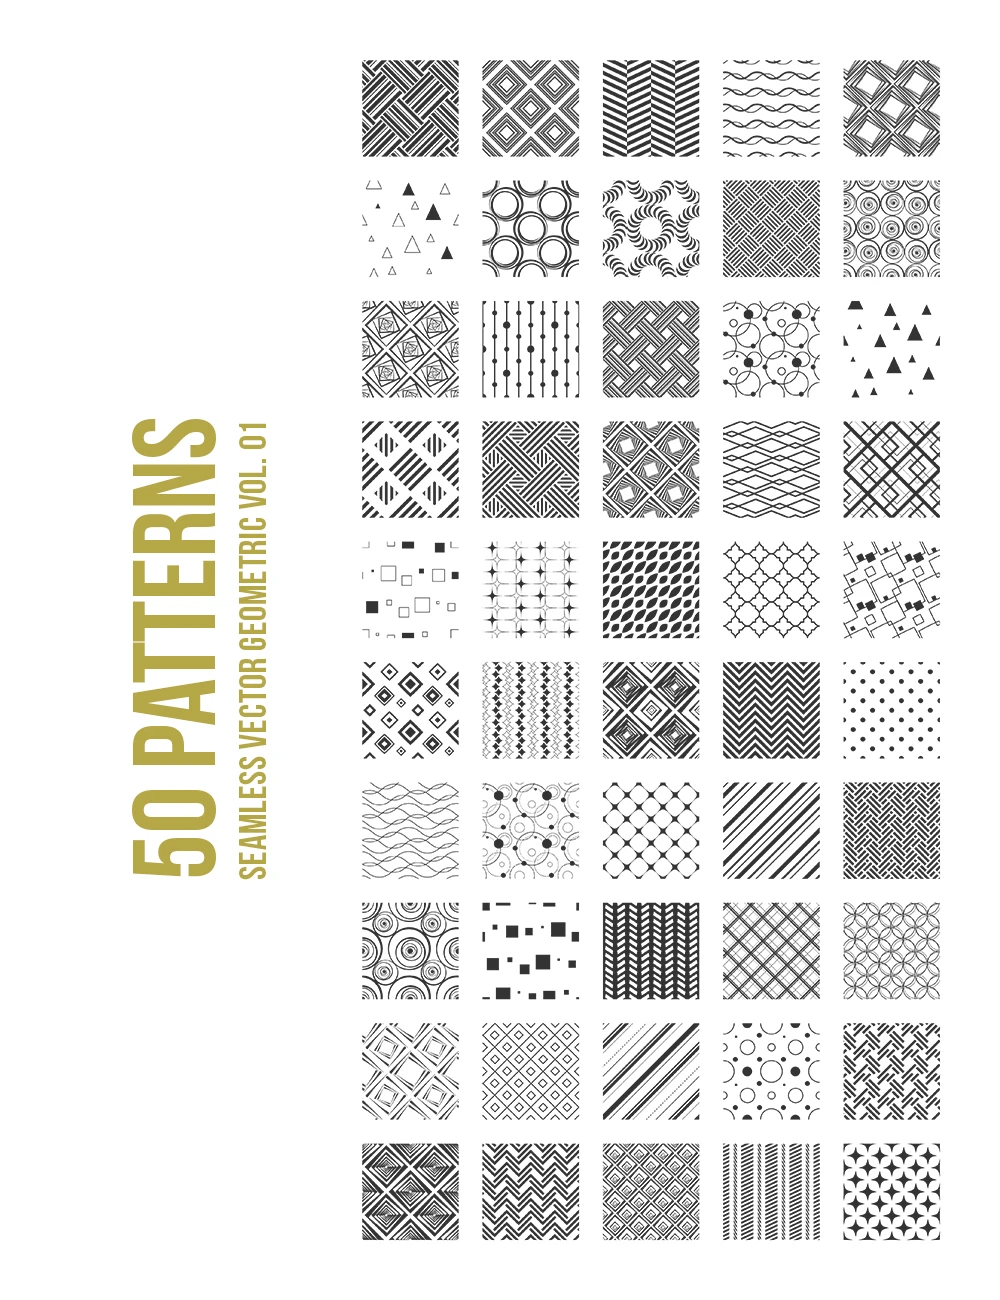 50 Geometric Seamless Vector Patterns 01 – Paper Moon Art & Design – Set of 50 geometric seamless vector patterns (polka dots, circles, chevron, stripes, squares, triangles, waves), which you can use for any of your personal or commercial surface pattern design projects: packaging, branding, fabric and textile prints, art prints, social media posts, merchandise products, website design, templates, etc. #patterns #geometricpatterns #geometric #seamlesspatterns #vectorpatterns #papermoonartdesign